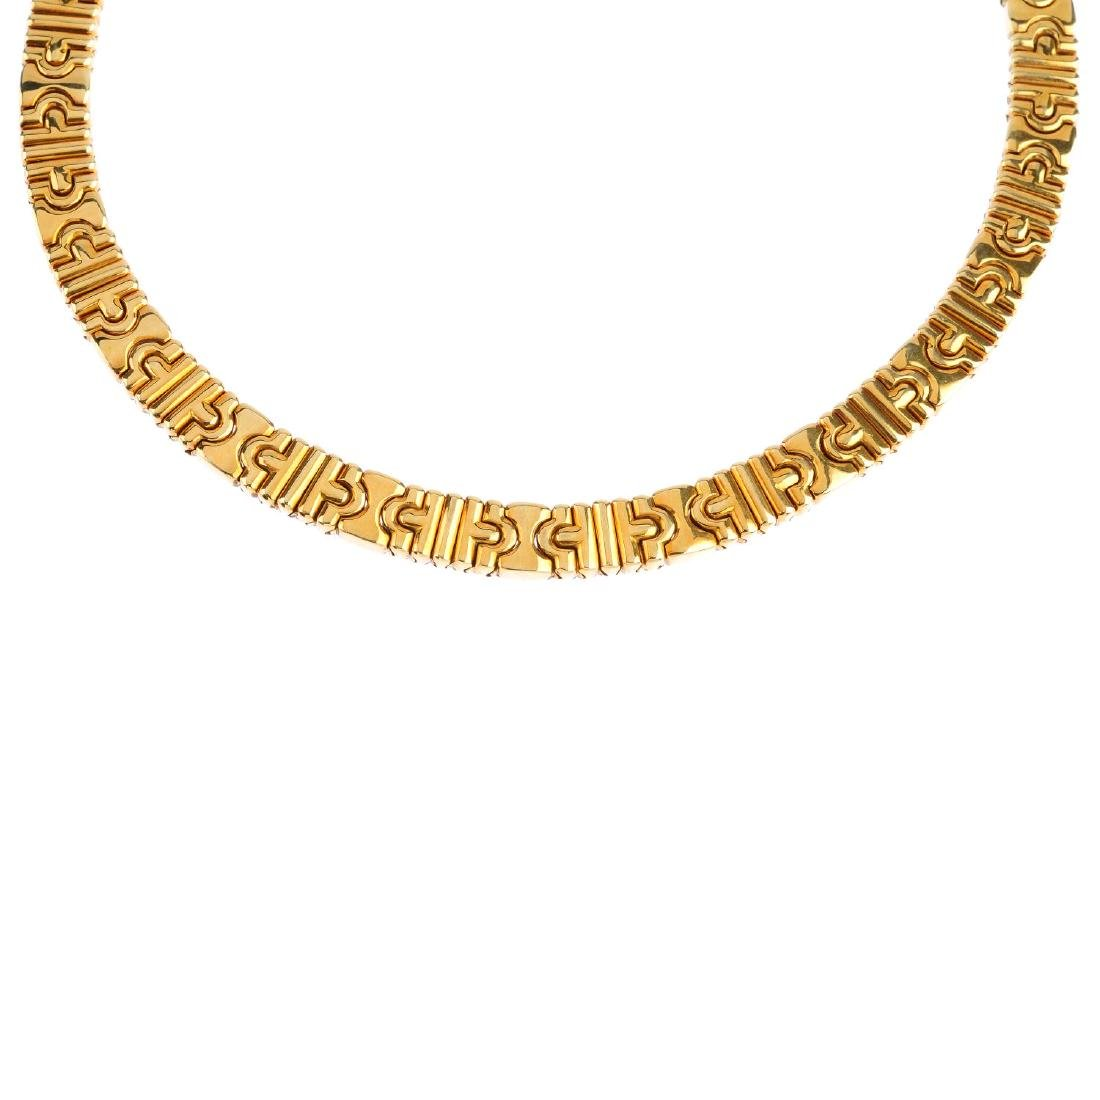 BULGARI - a 'Parentesi' collar. Designed as a geometric